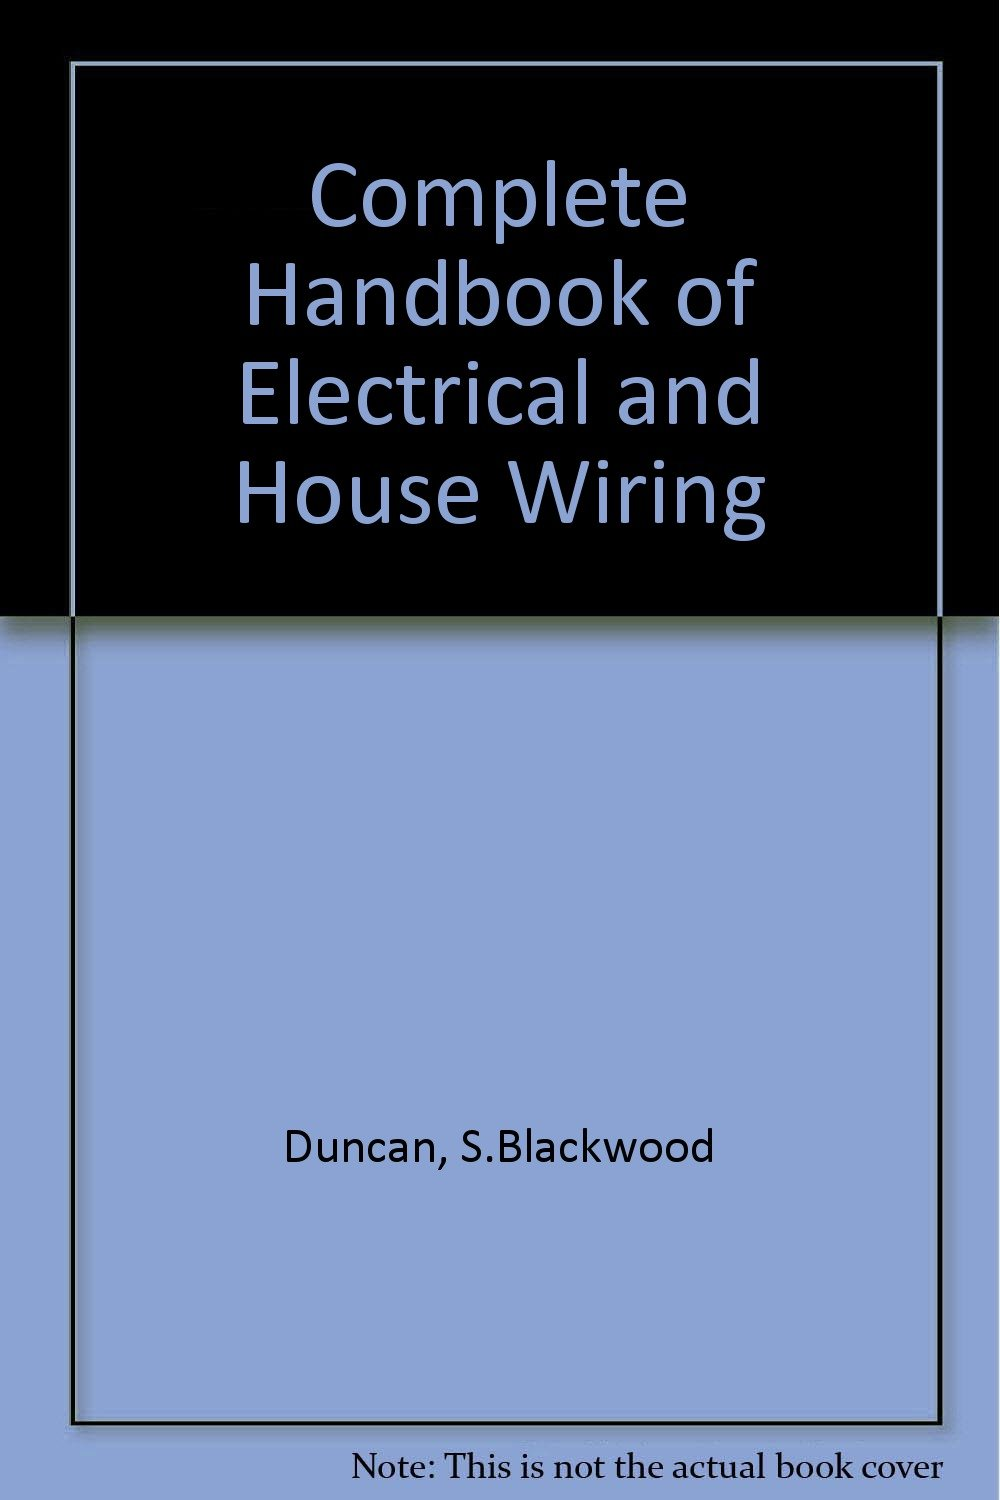 Complete Handbook Of Electrical And House Wiring Sblackwood Duncan 9780830669134 Books